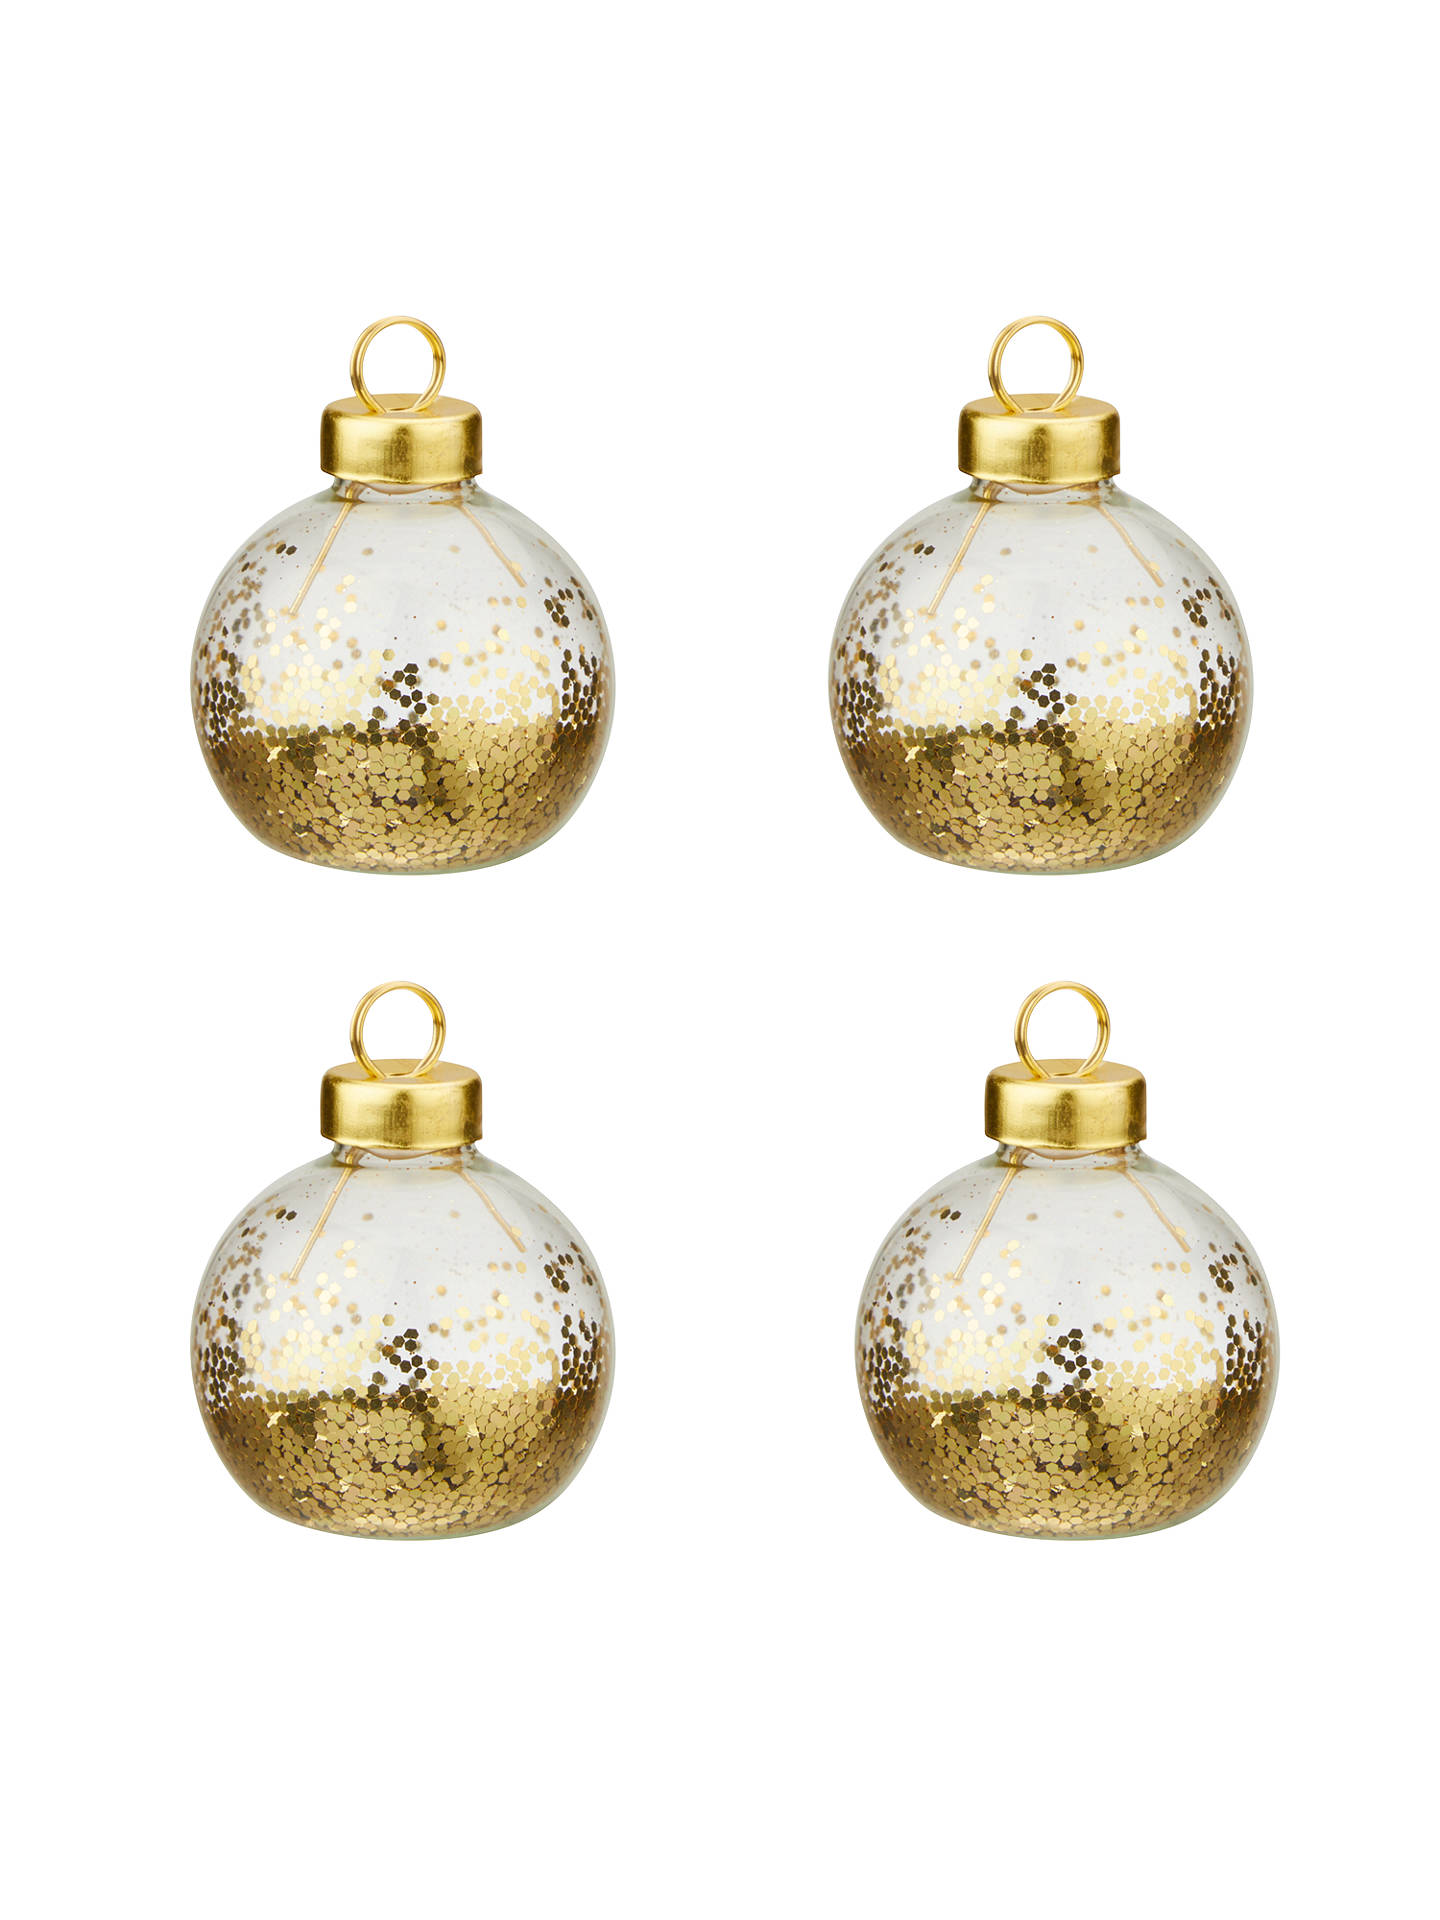 BuyJohn Lewis & Partners Glitter Bauble Placecard Holders, Set of 4, Gold Online at johnlewis.com